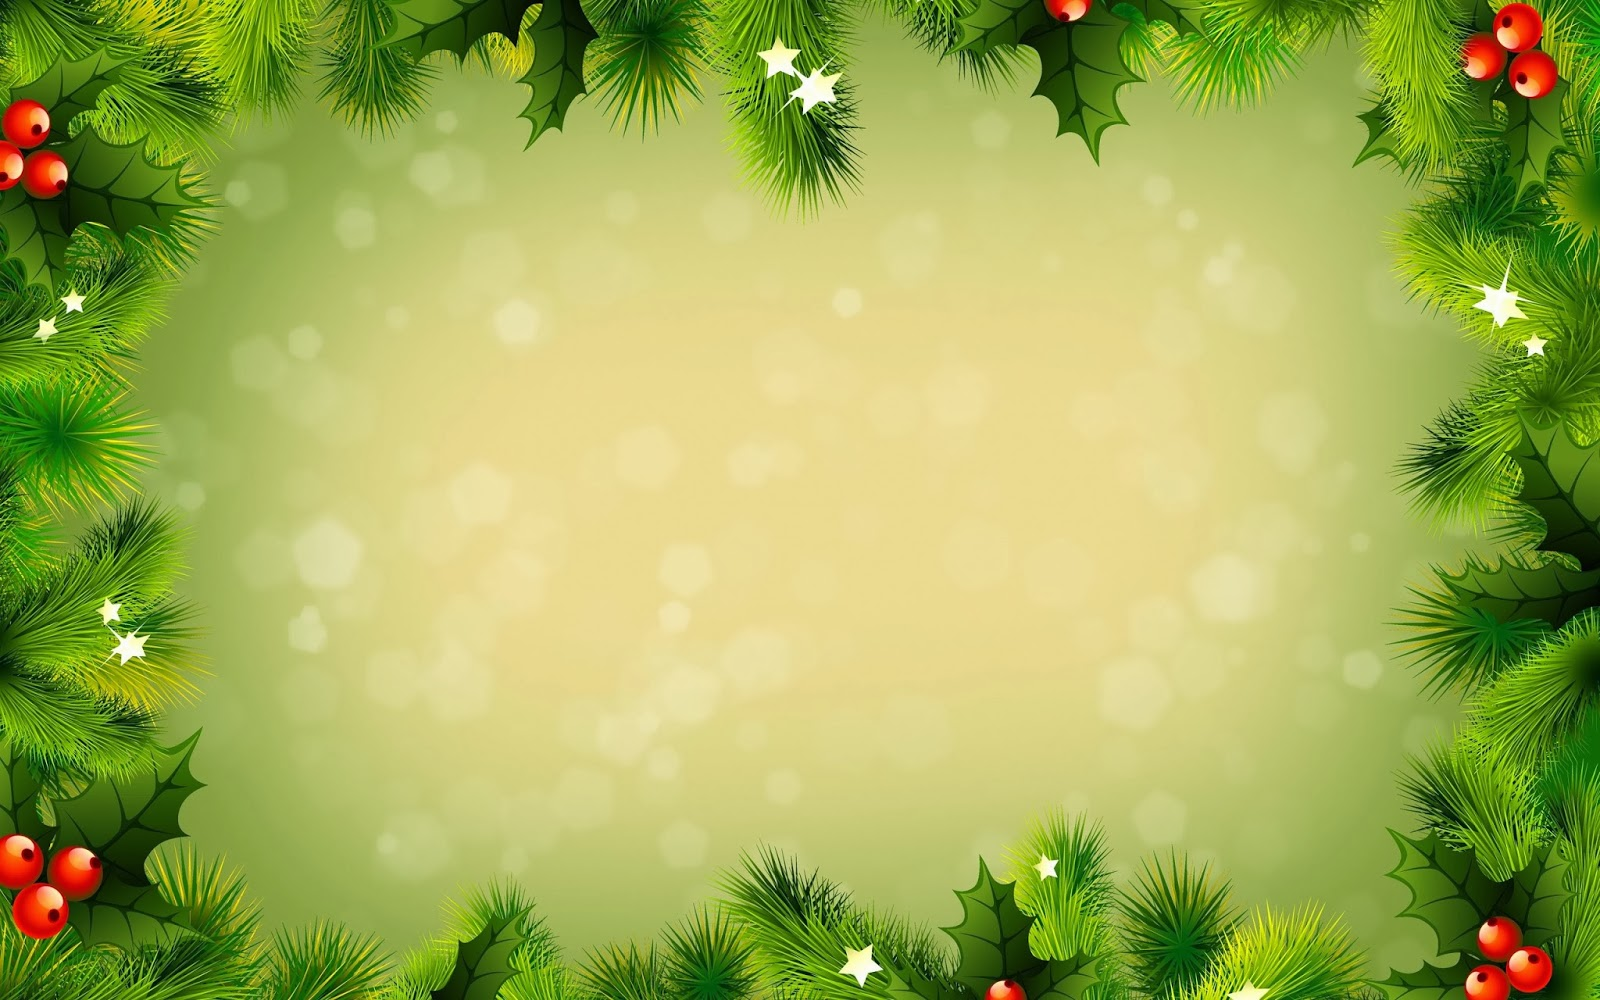 Christmas Greeting Card Message Background Psd Template Free Download